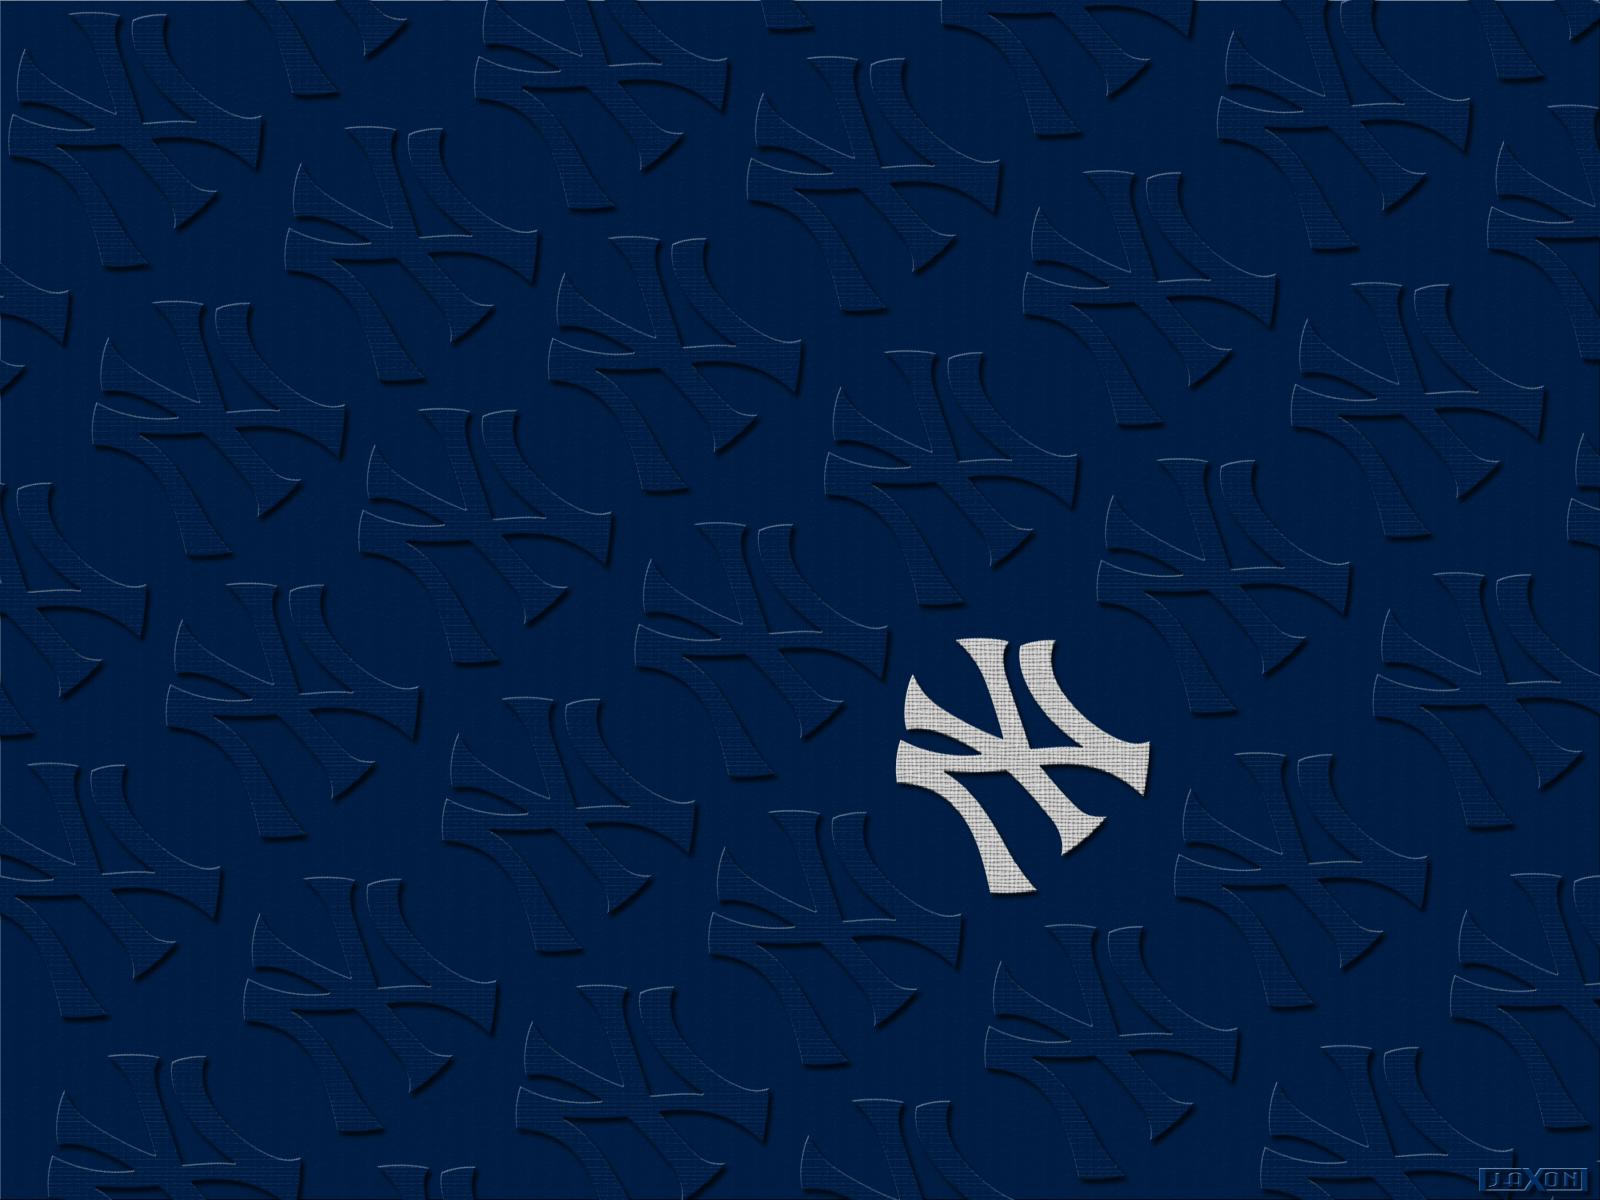 Yankees wallpapers blackberry forums at crackberry new york yankees yankees wallpapers blackberry forums at crackberry new york yankees backgrounds pixels talk 1600x1200 voltagebd Choice Image